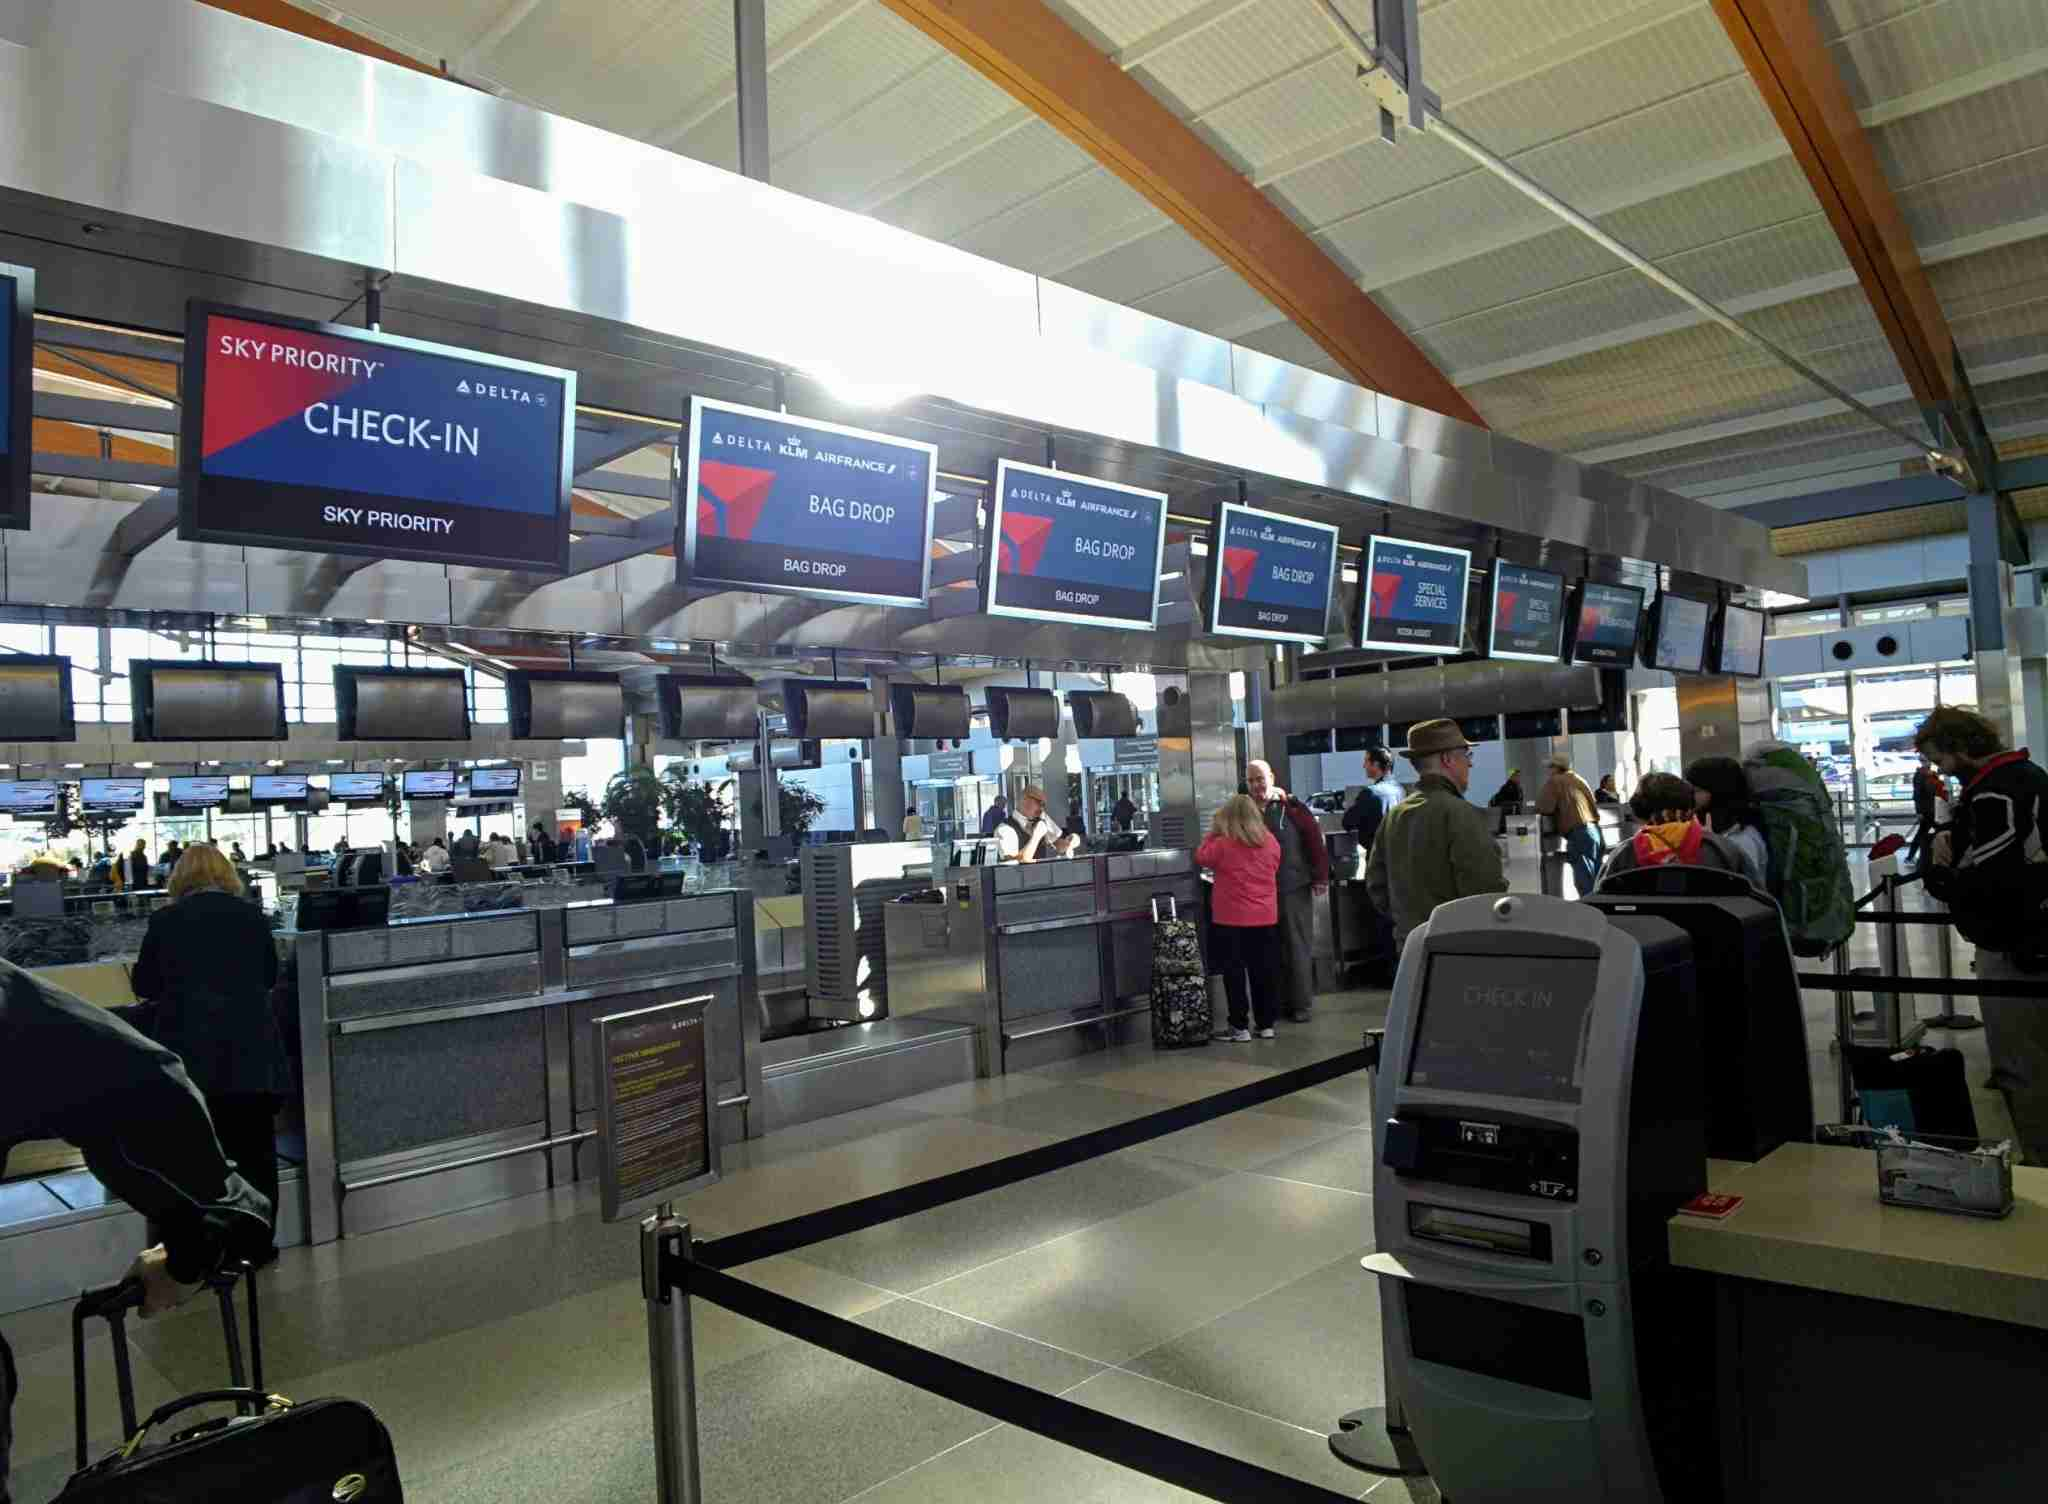 Delta Check-in Counters at RDU Airport (Photo by Darren Murph / The Points Guy)